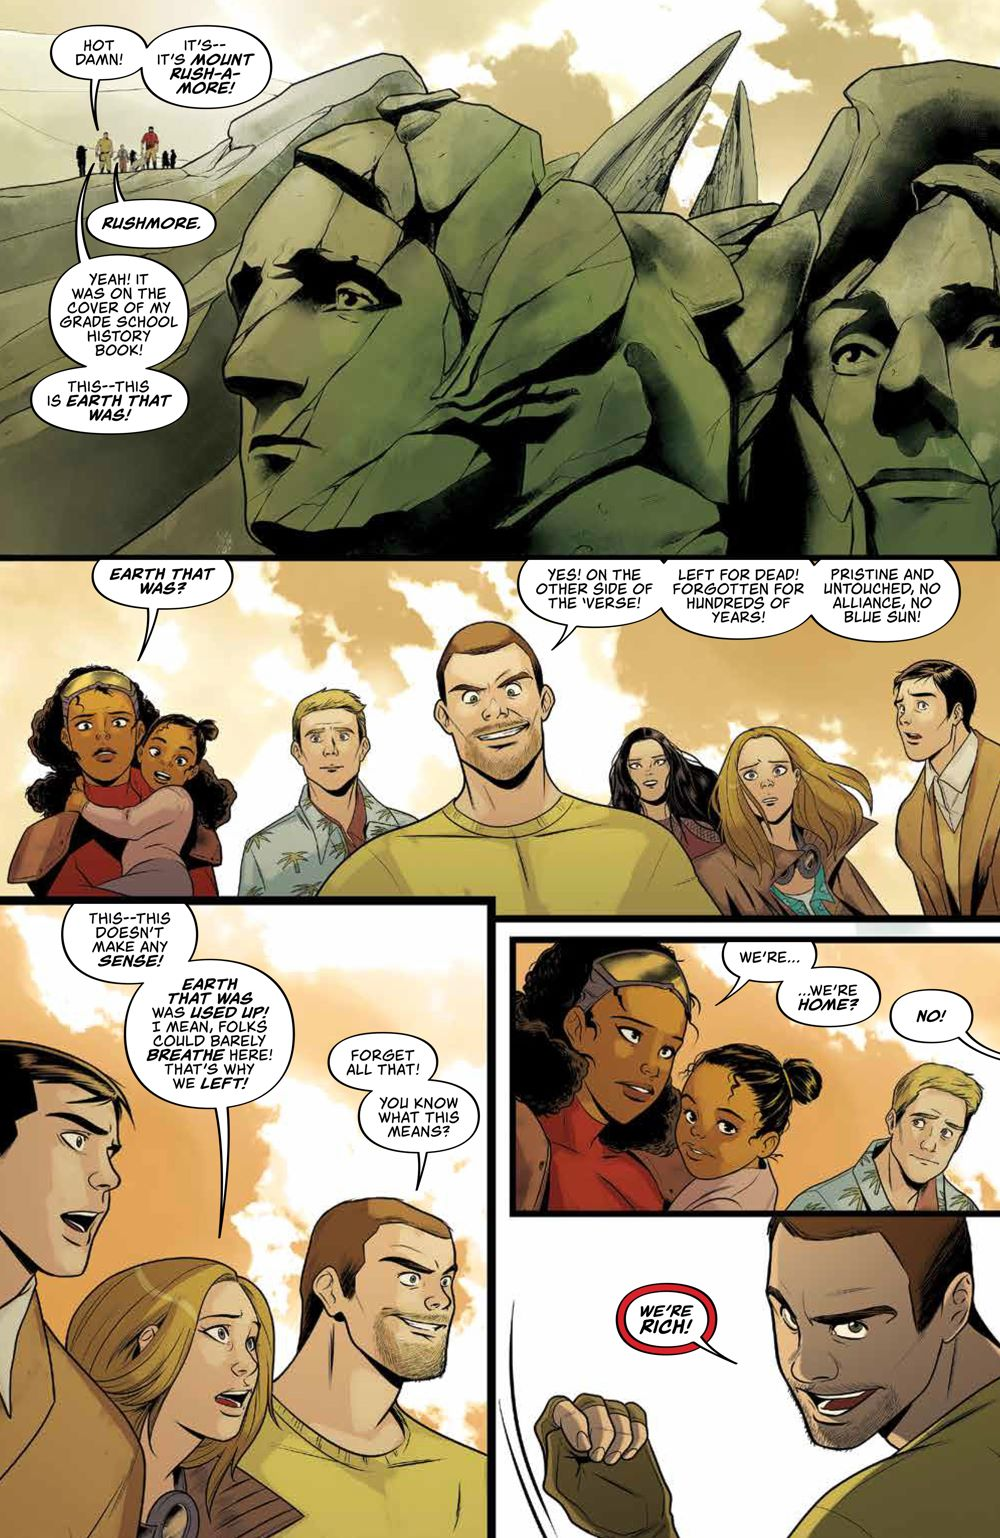 Firefly_029_PRESS_8 ComicList Previews: FIREFLY #29